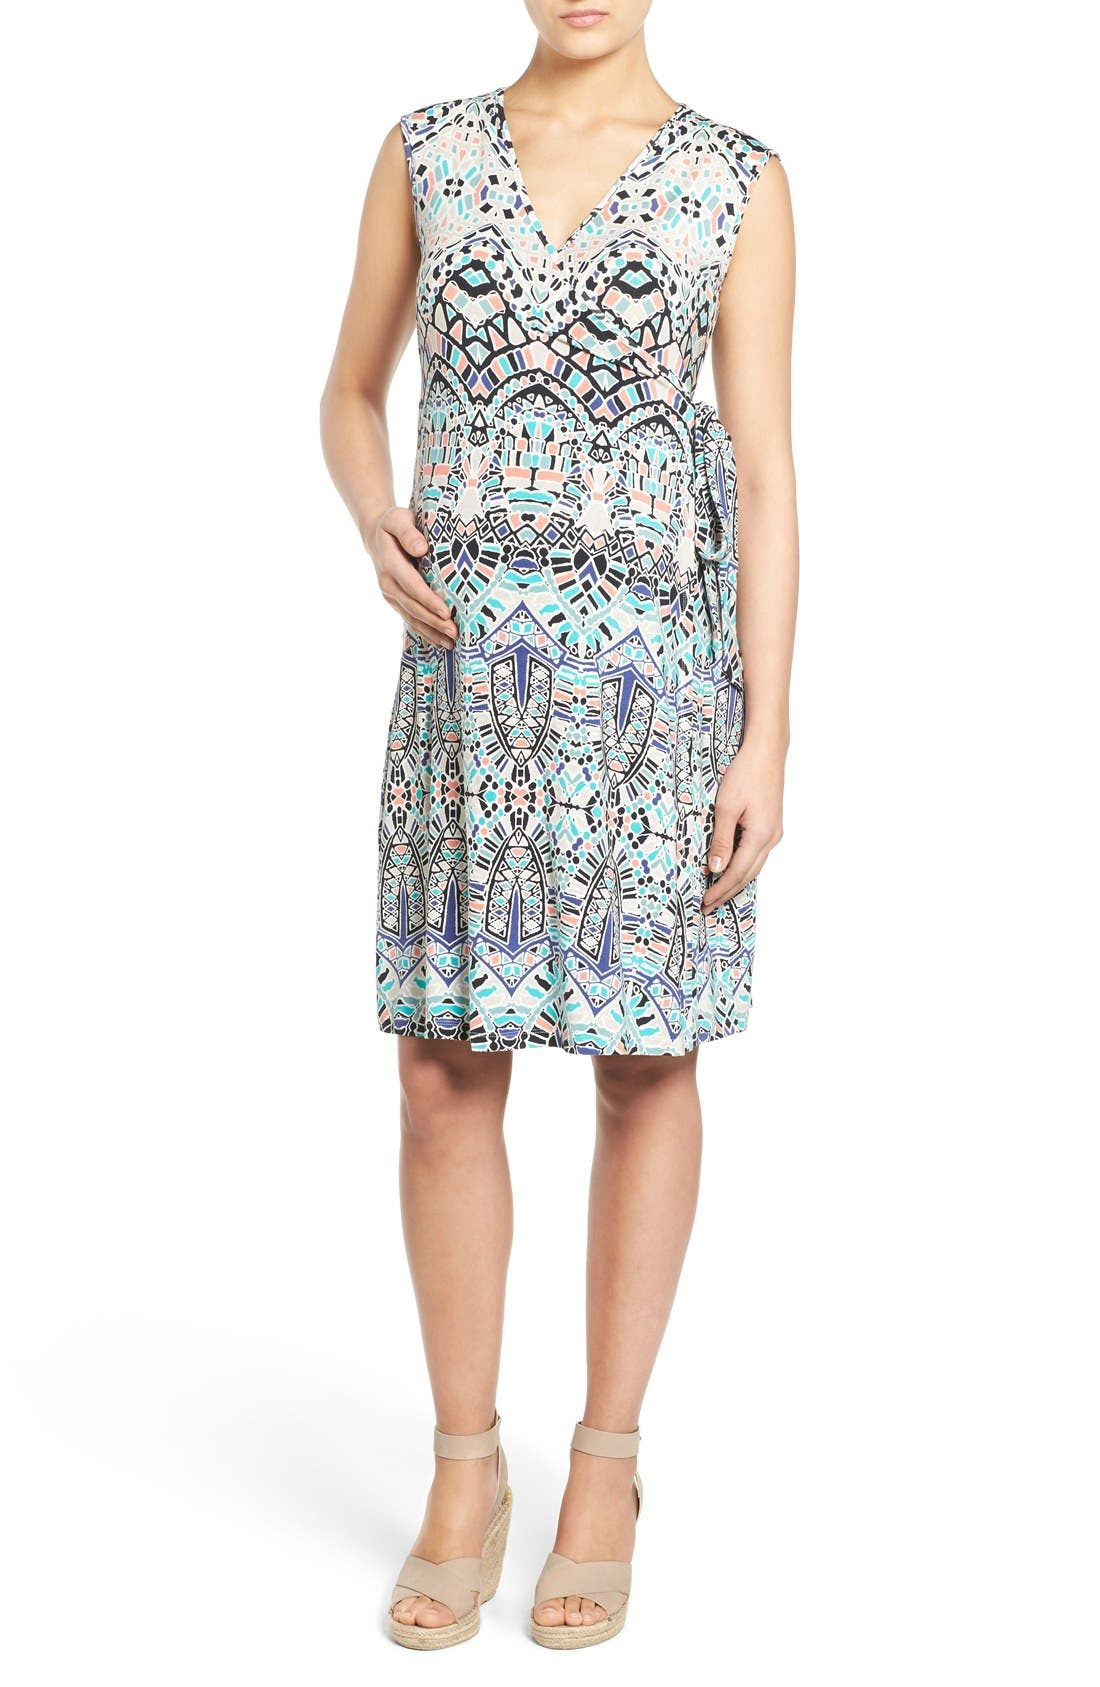 TART MATERNITY 'Charmaine' Print Jersey Maternity Wrap Dress, Main, color, INK TILES